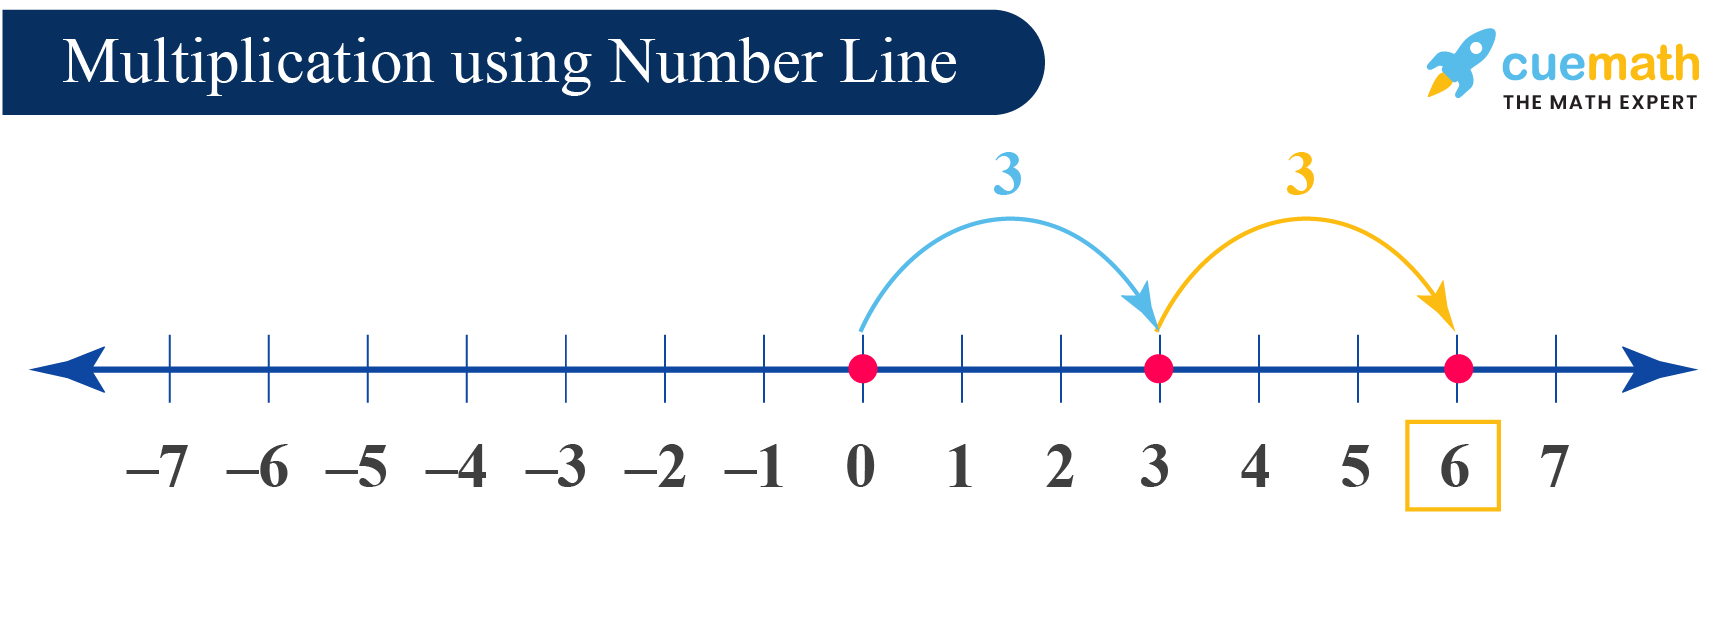 Multiplication of Integers: Multiplying integers using the number line